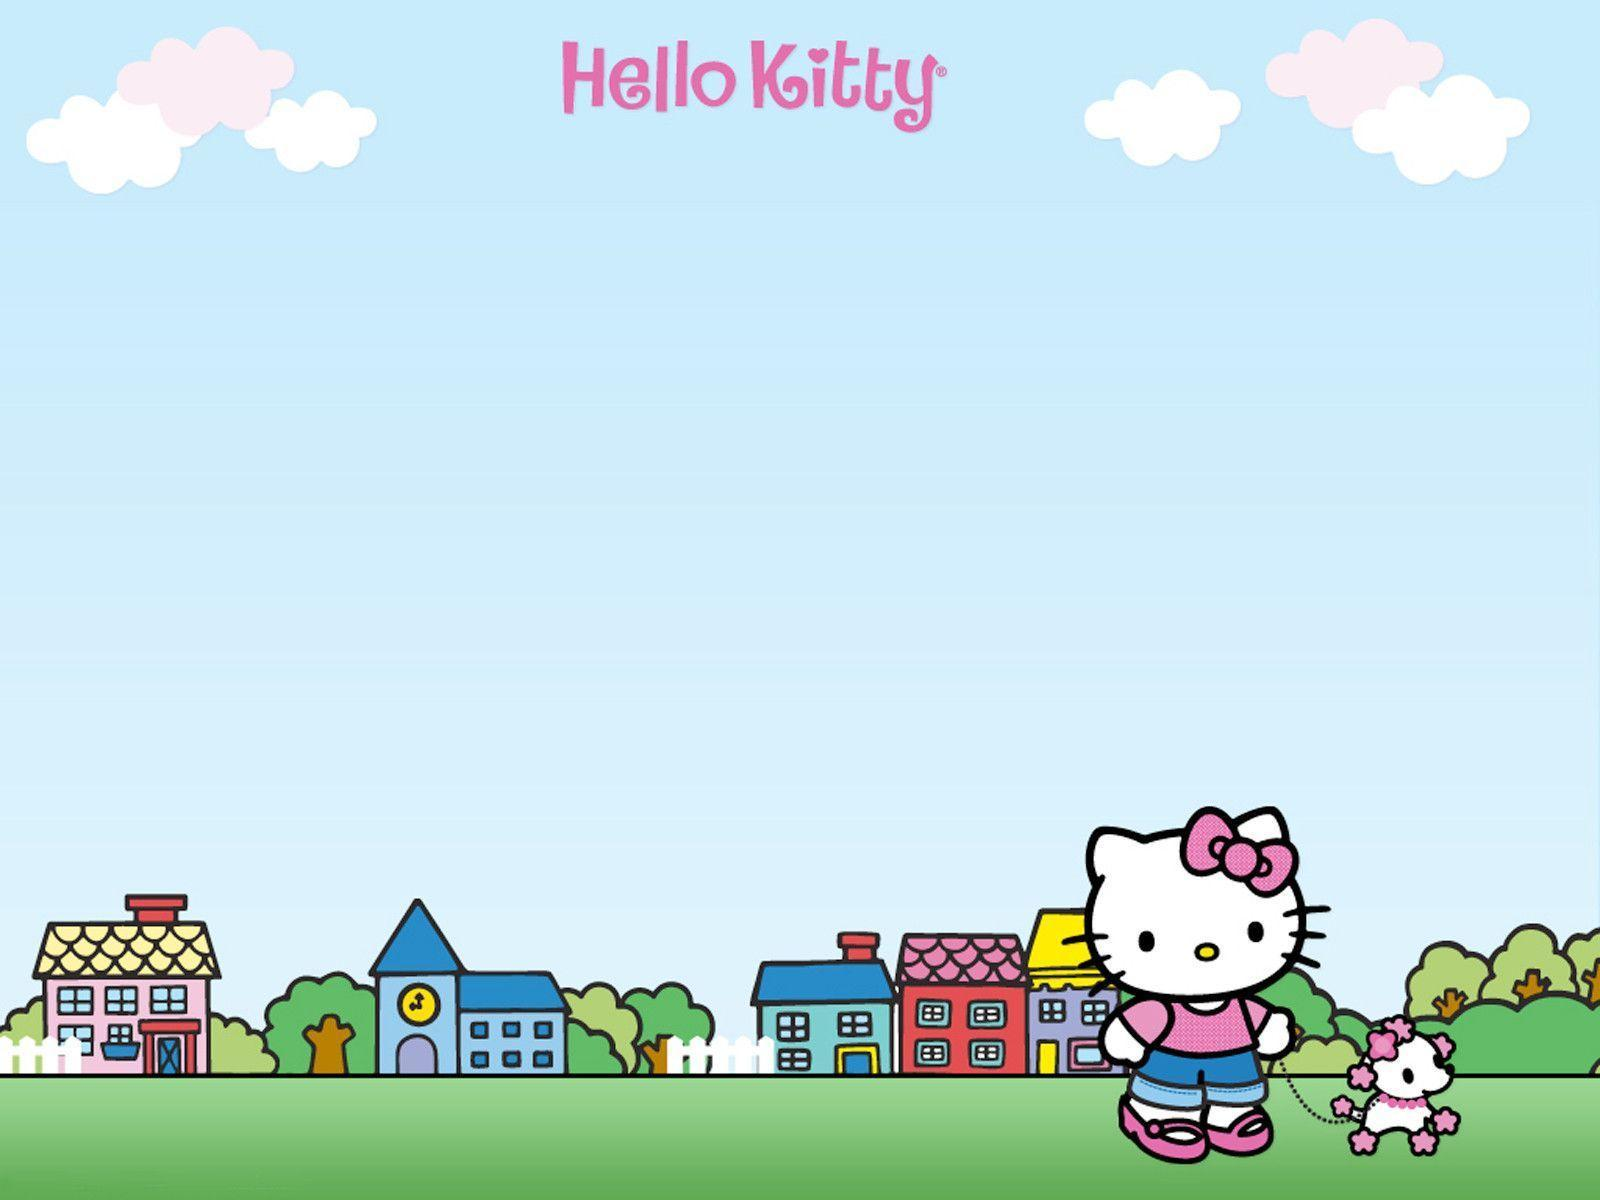 Free Hello Kitty Wallpaper For Laptop 36408 Wallpaper | wallpicsize.